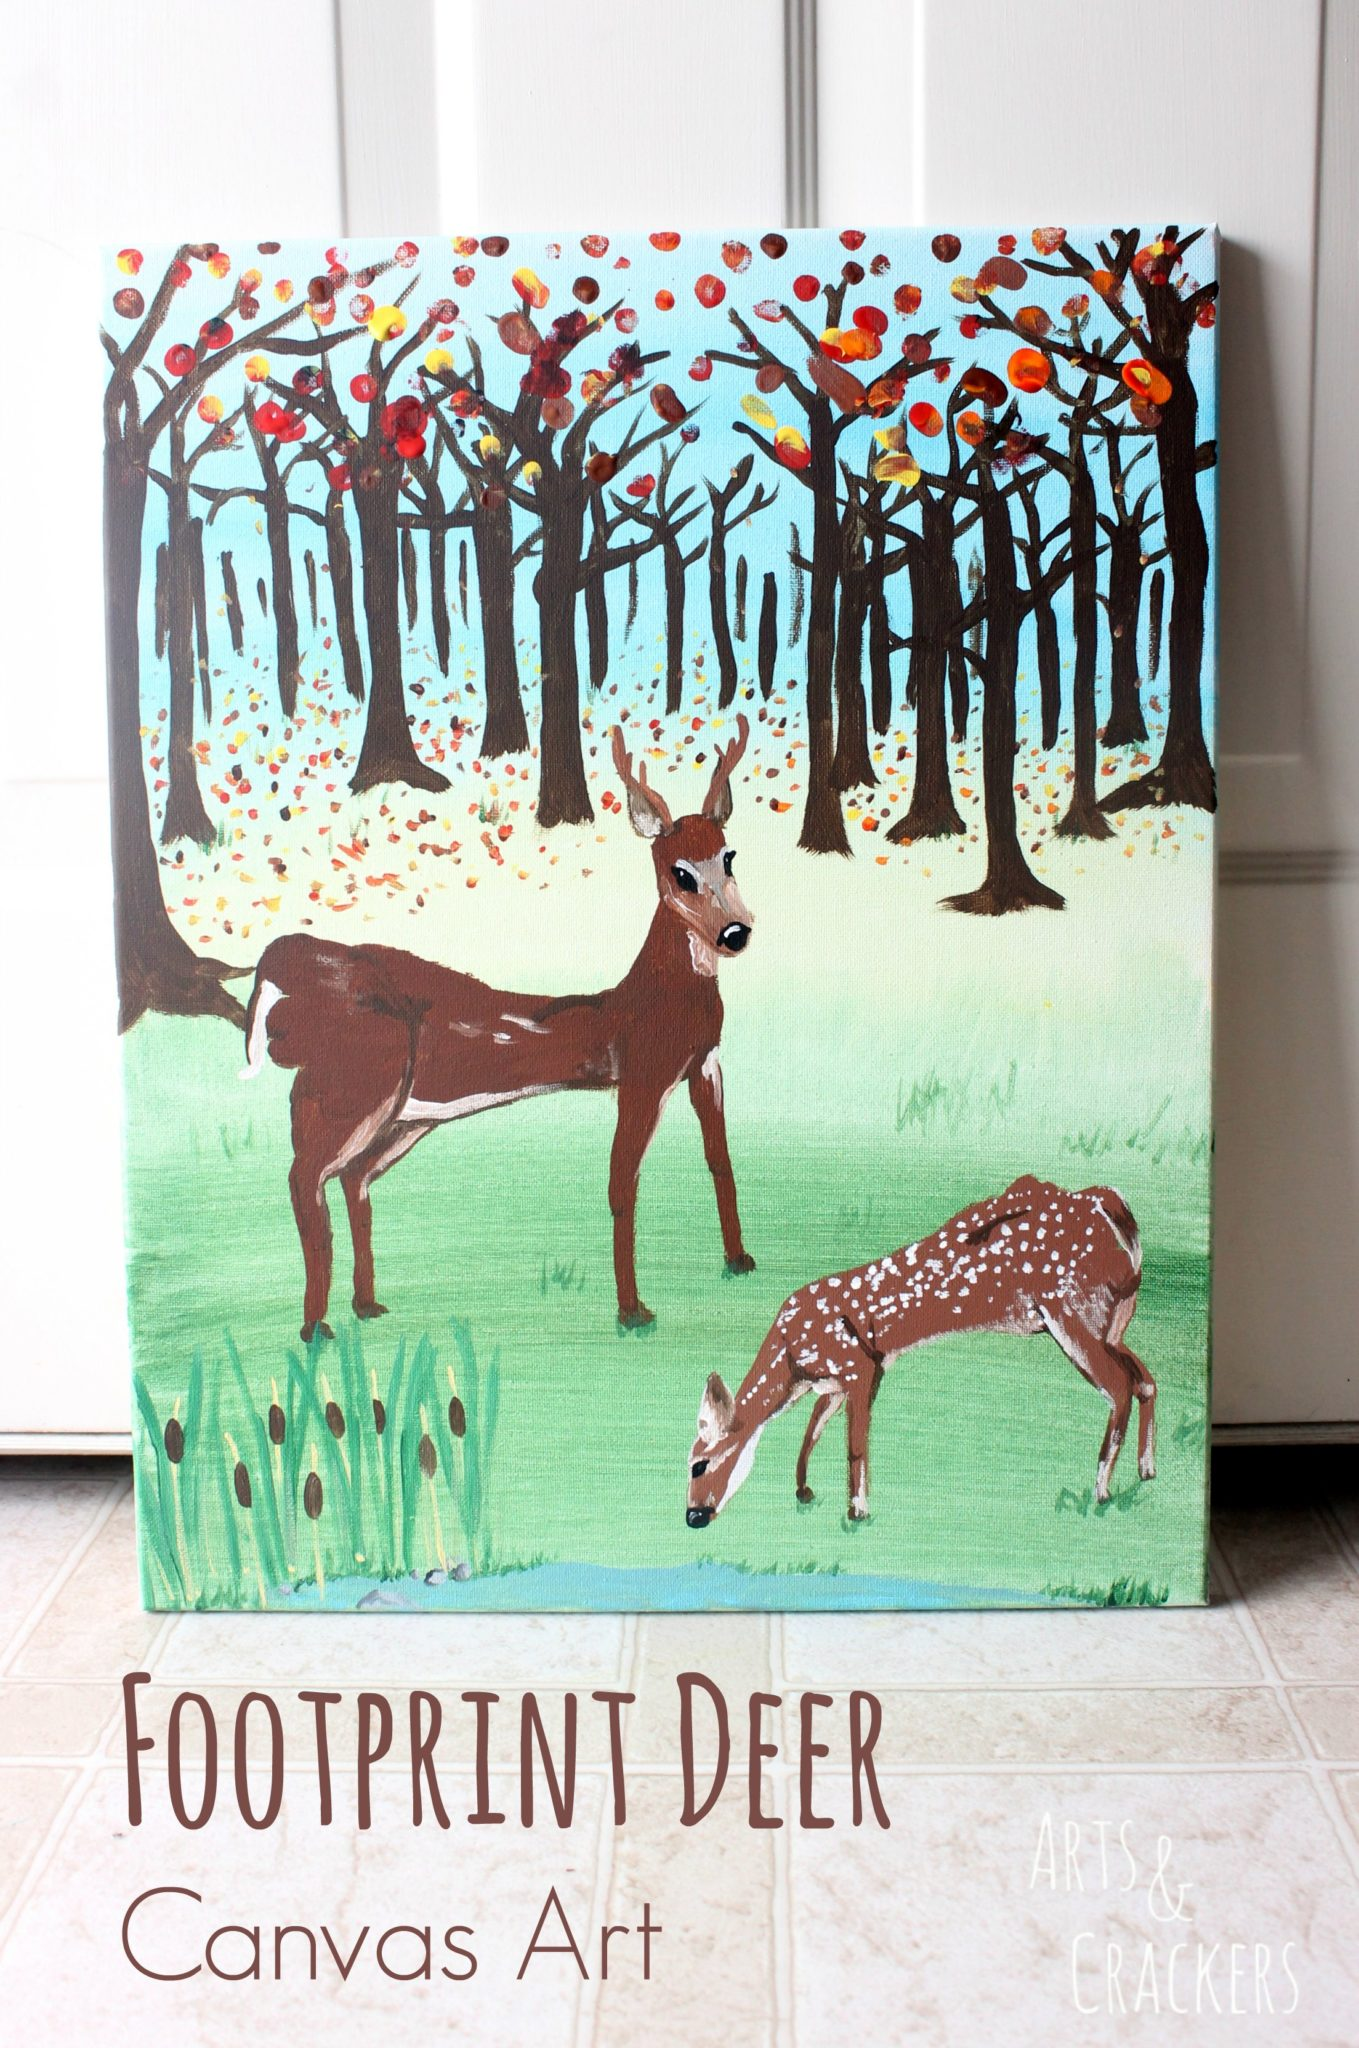 Footprint Deer Canvas Art